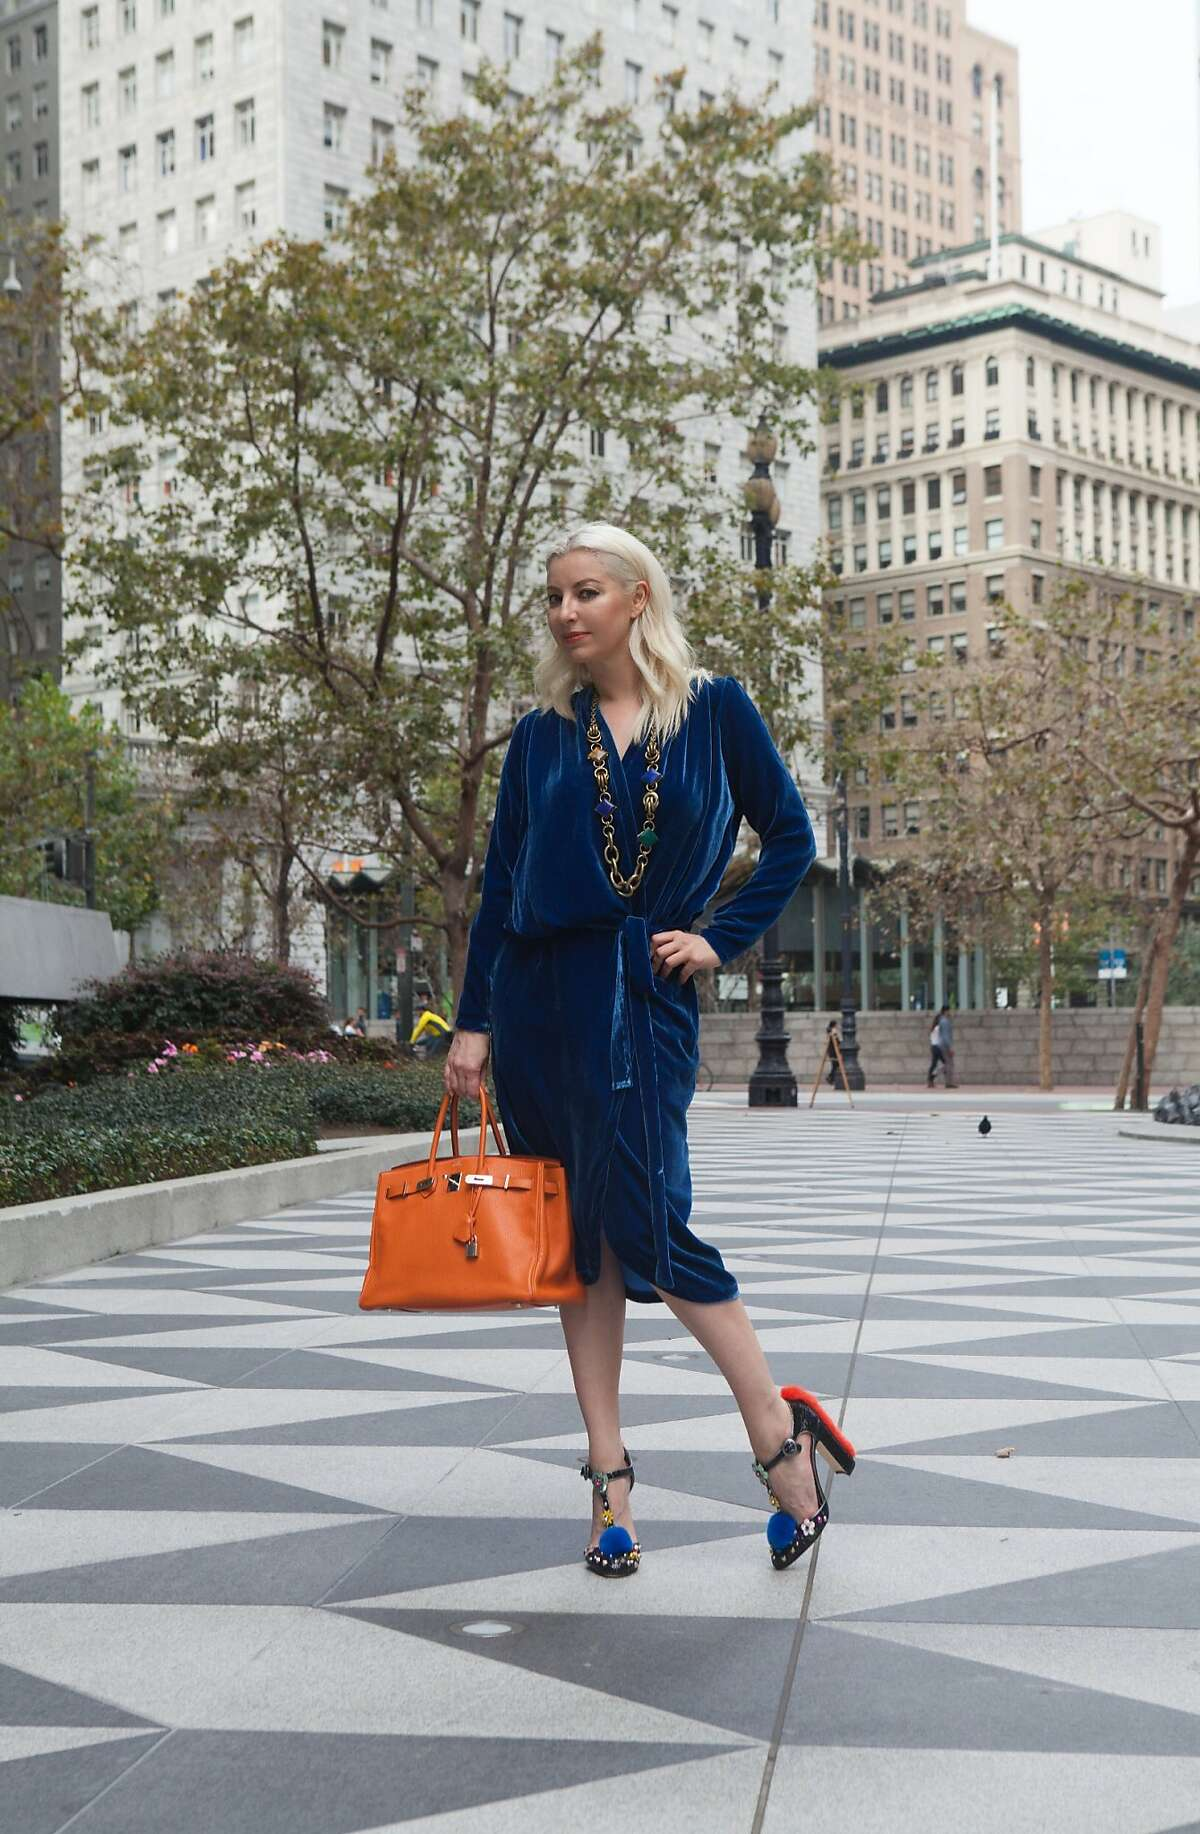 """San Francisco's Sonya Molodetskaya (seen here in a robe dress, $450, of her own design) in December 2016 launched a fashion line called """"Major Obsessions"""" in collaboration with Altana Danzhalova. It features tops and dresses based on seasonal trends, and manufactured in San Francisco. Prices range from $380 to $550, www.majorobsessions.com"""